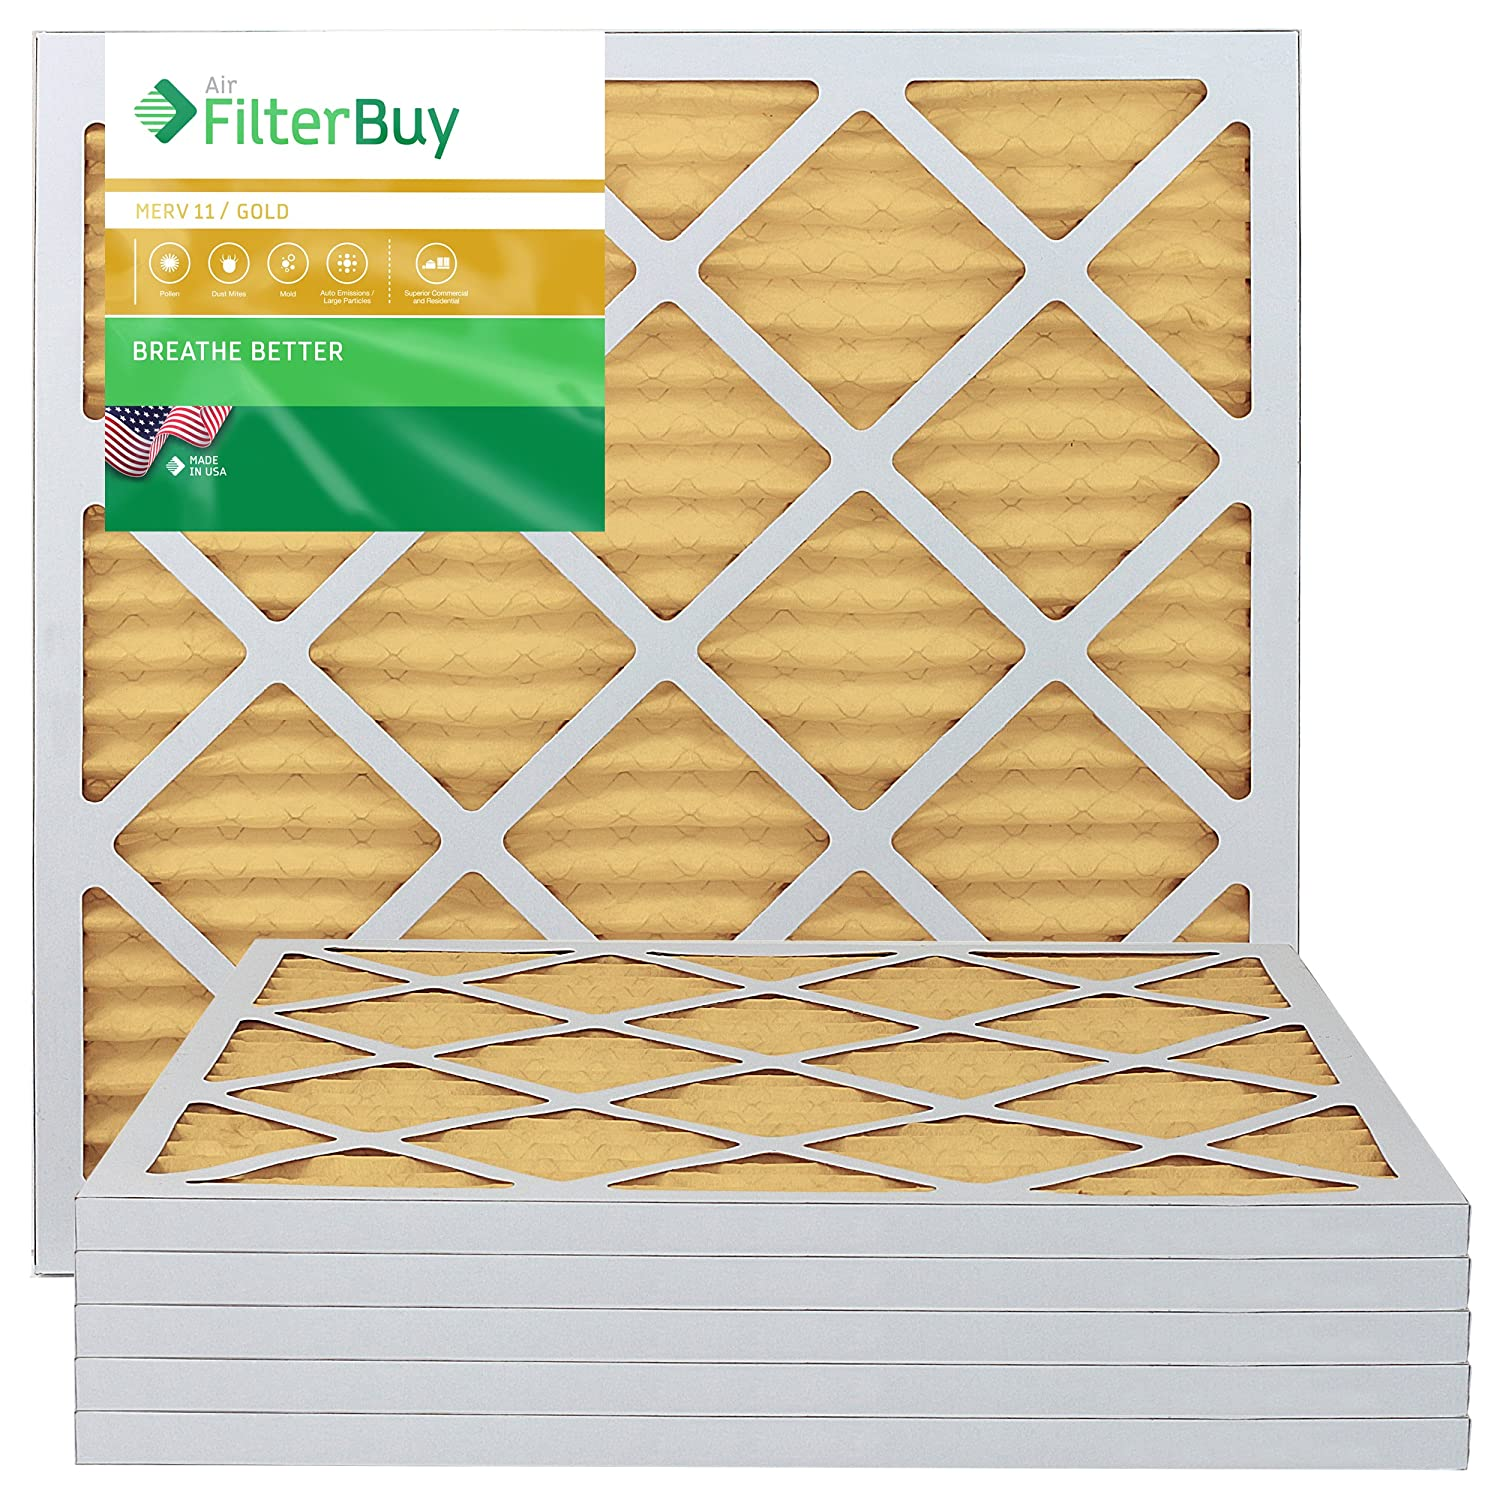 FilterBuy 20x20x1 MERV 11 Pleated AC Furnace Air Filter, (Pack of 6 Filters), 20x20x1 – Gold